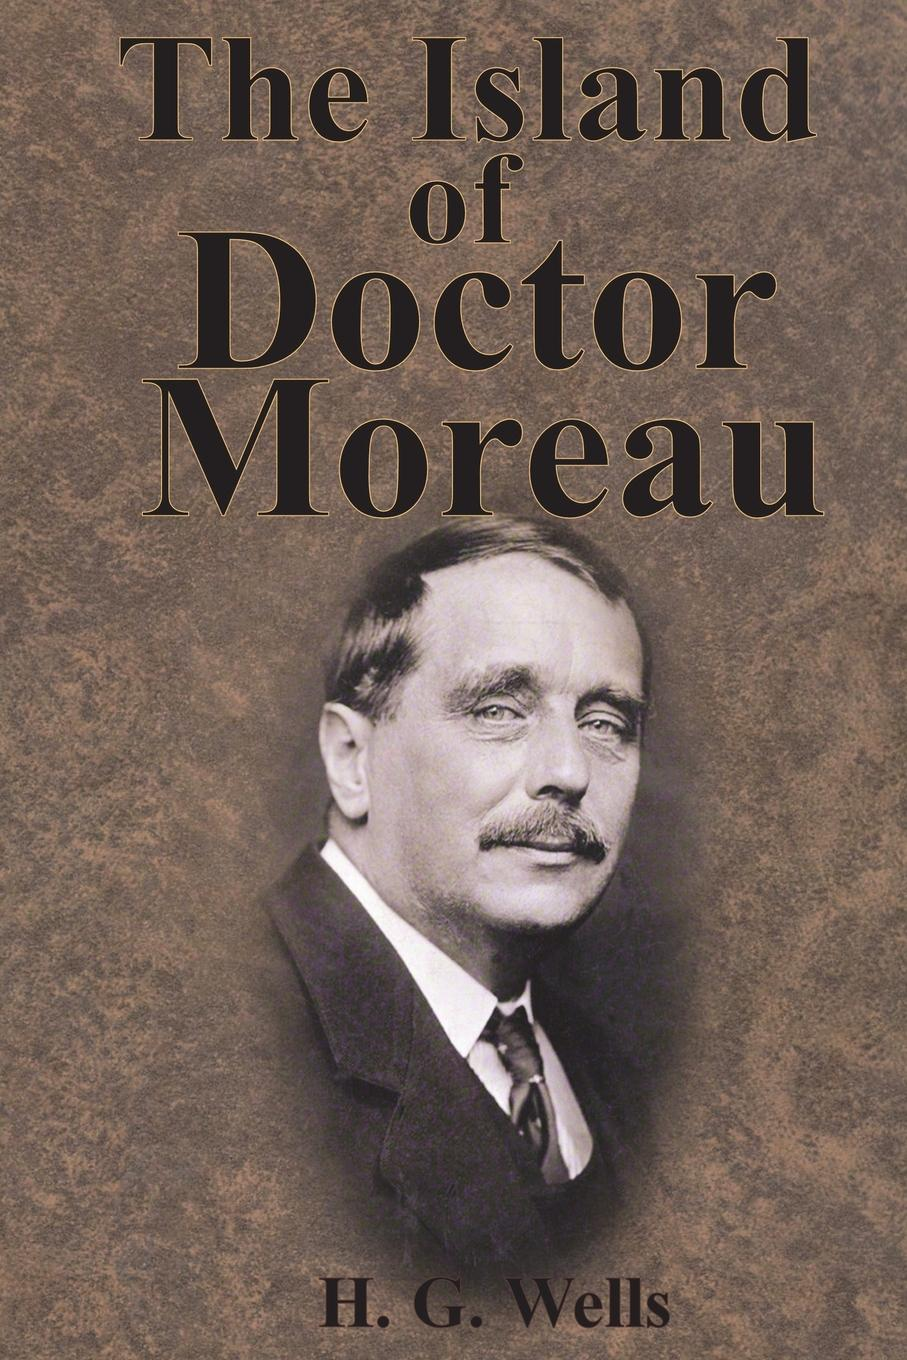 H. G. Wells The Island of Doctor Moreau h moreau febvre arpege